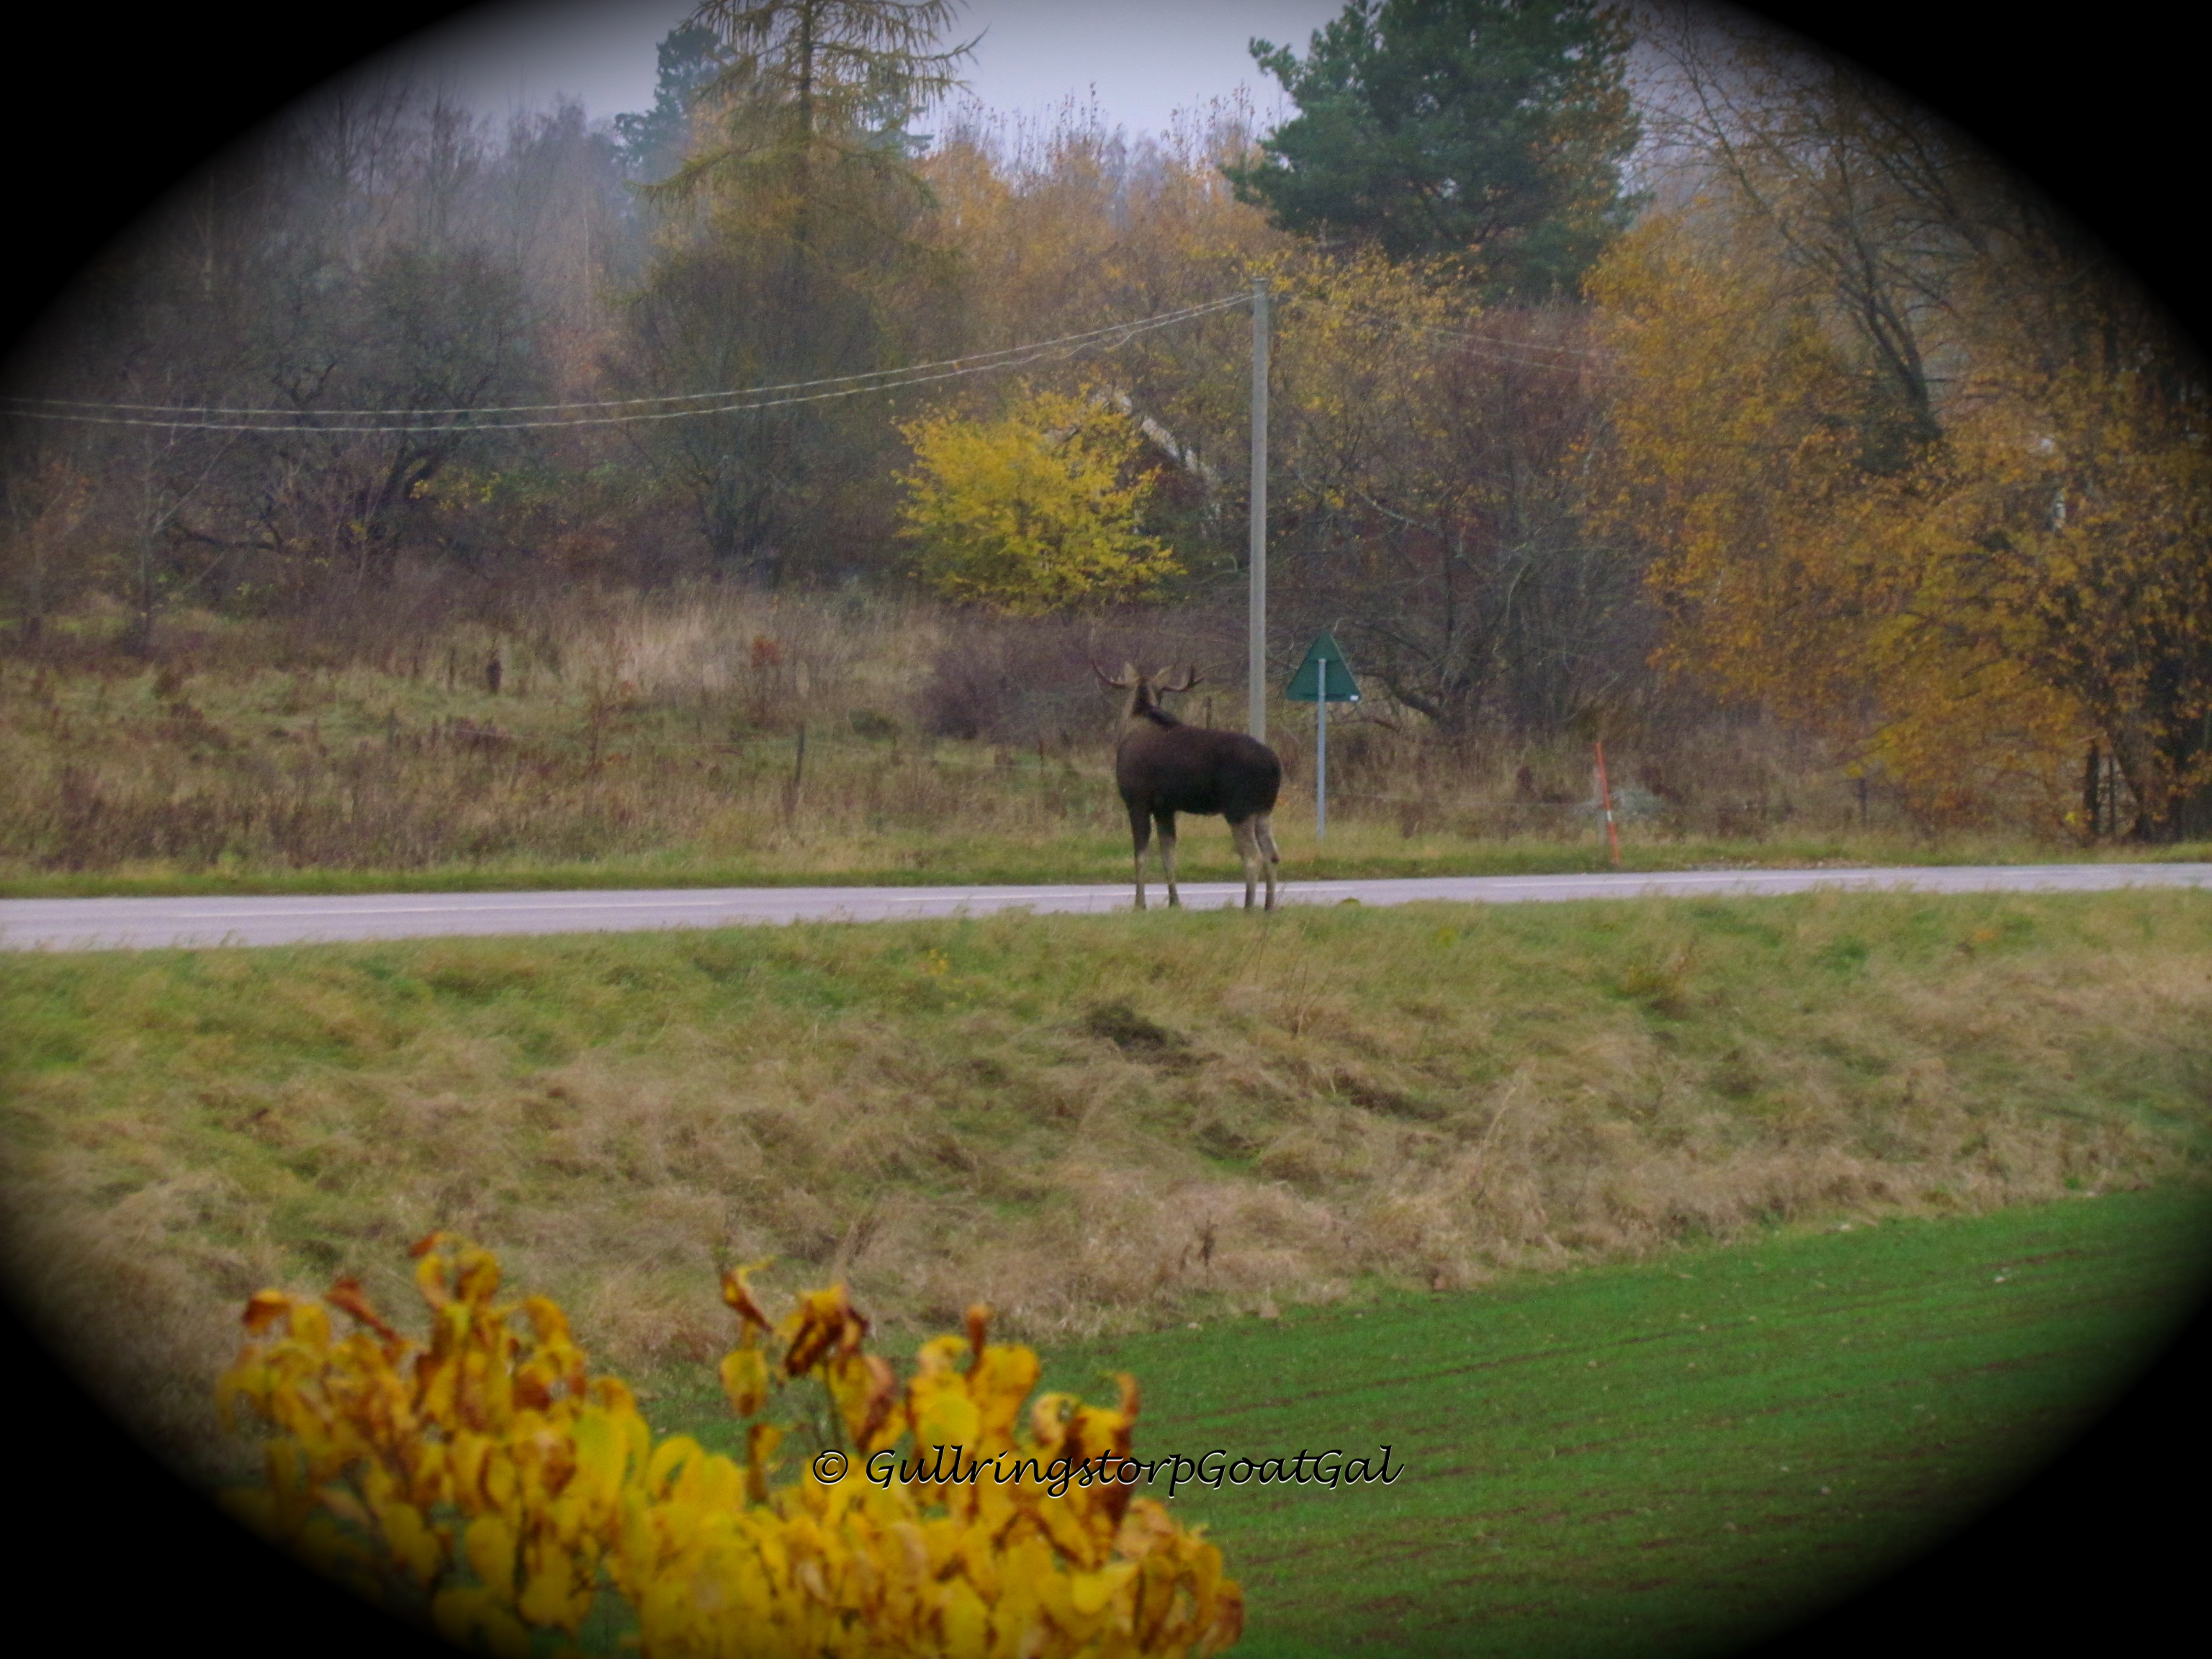 Average Weight Of Bull Moose http://gullringstorpgoatsblog.wordpress.com/2011/11/03/bull-moose-family-at-gullringstorp/